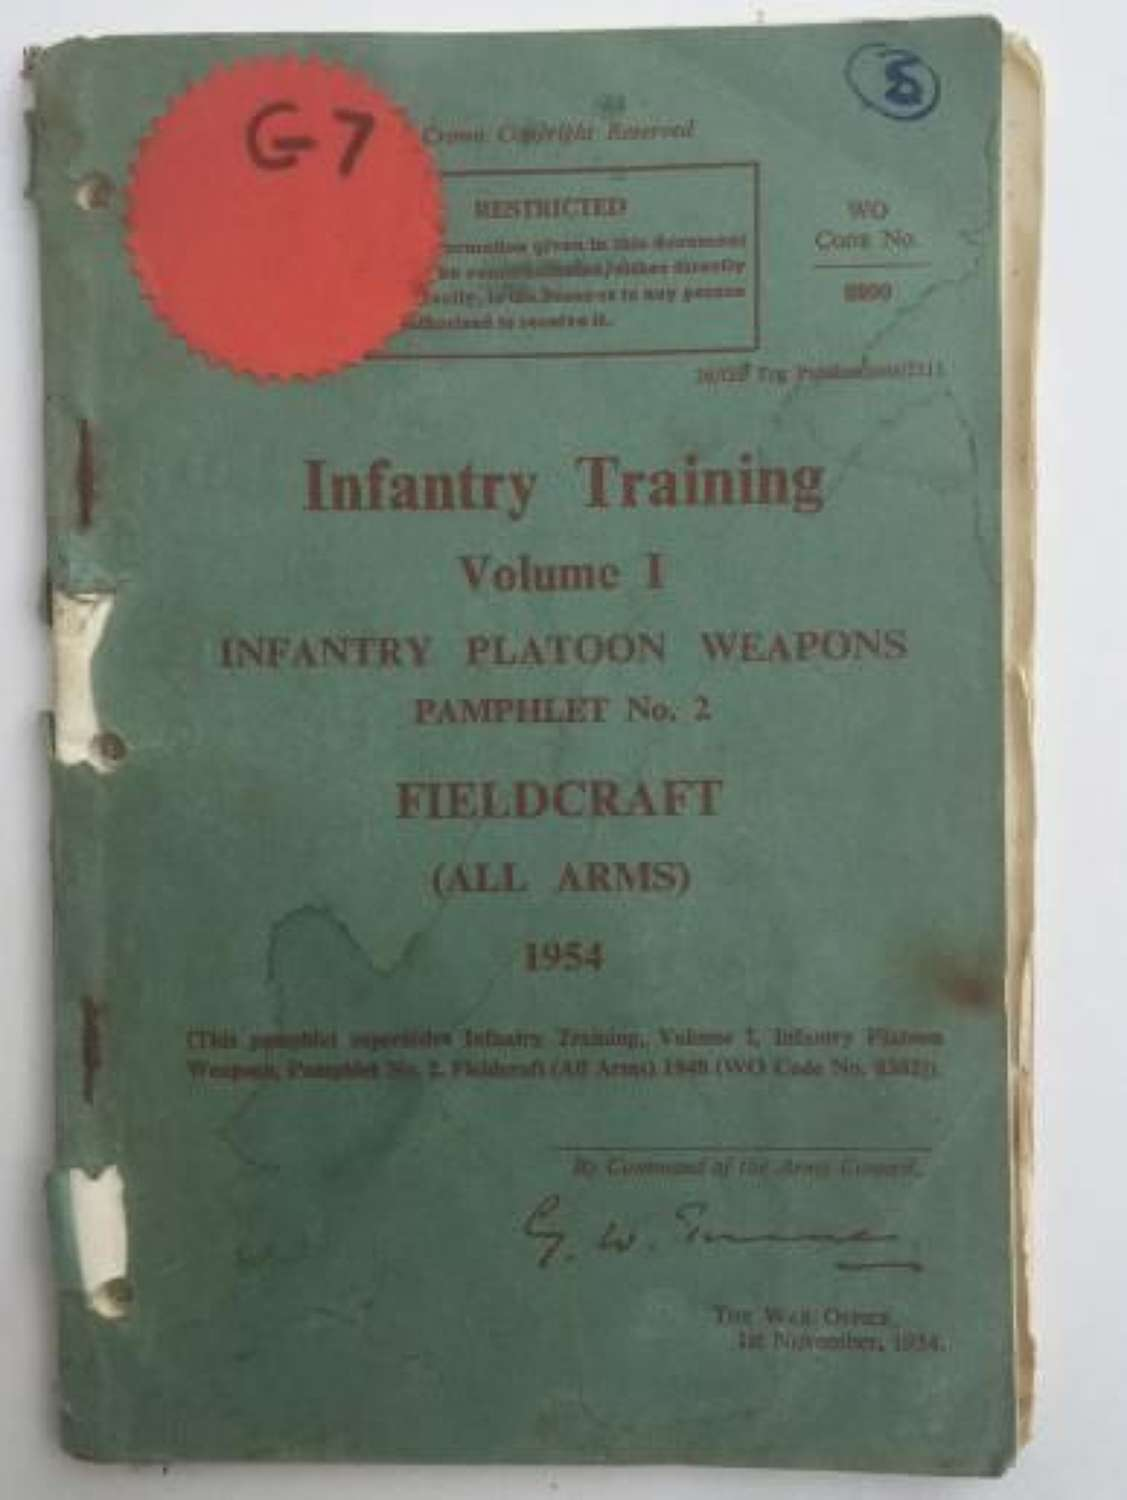 Infantry Training Manual 'Fieldcraft' Dated 1954